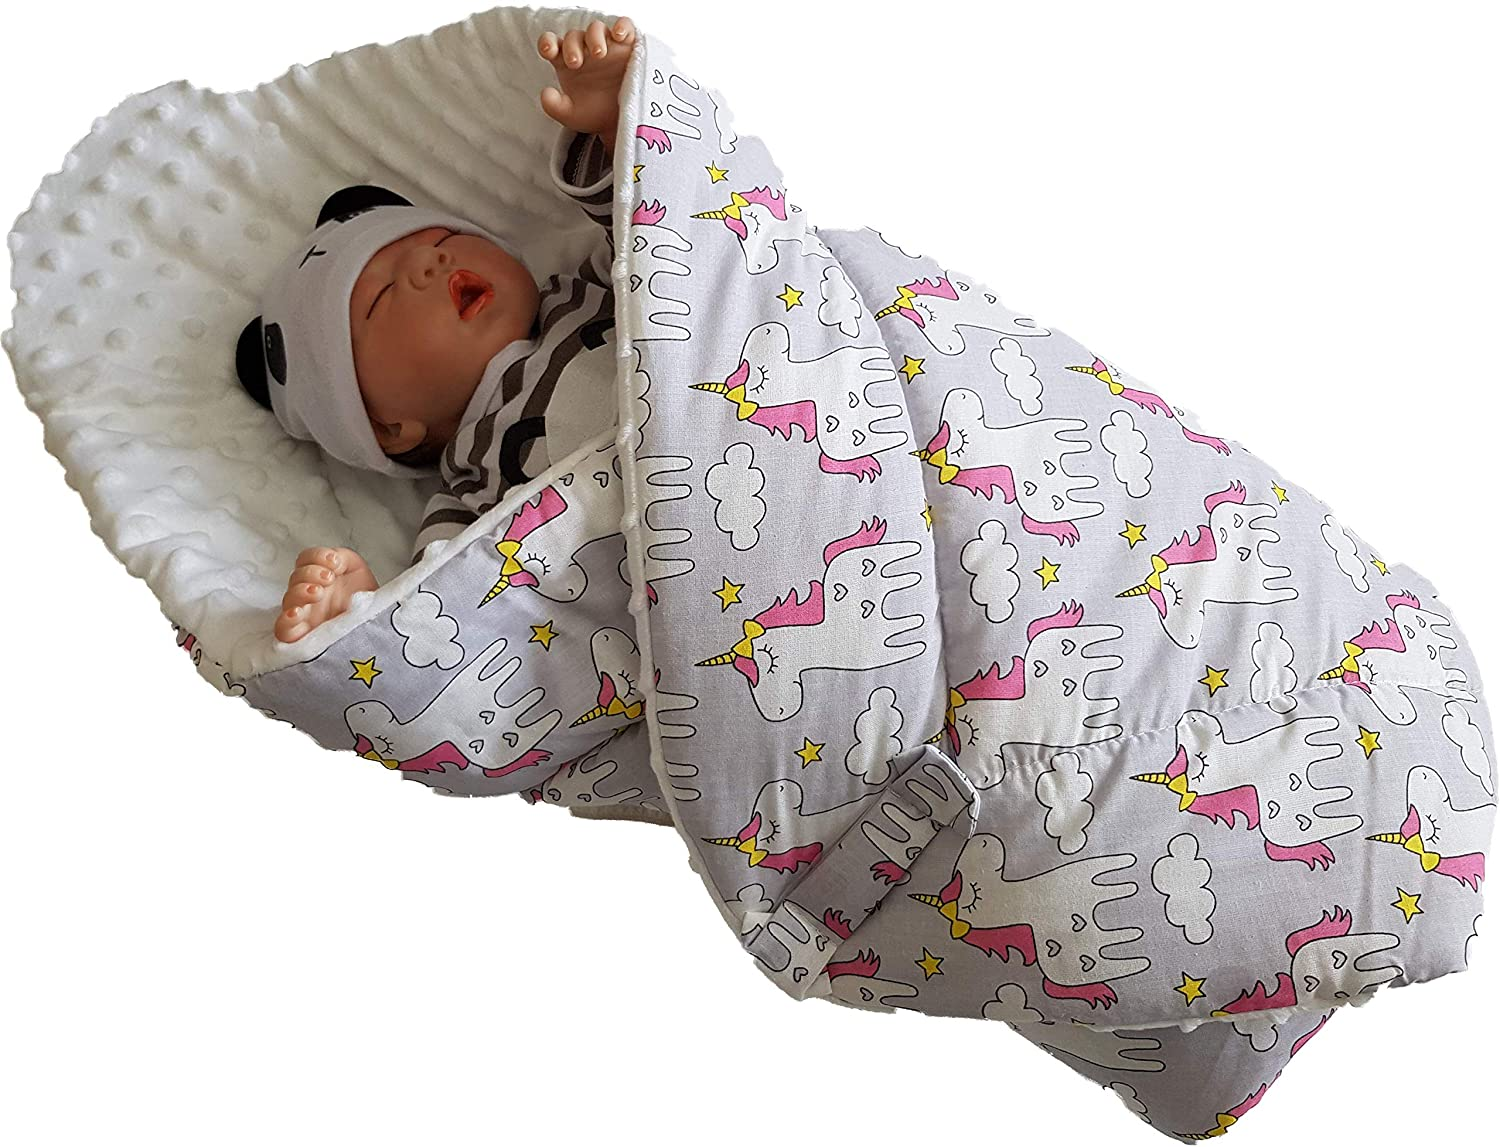 Perfect as a Baby Shower Gift BlueberryShop Minky Fleece Baby Swaddle Wrap Bedding Blanket Two-Sided Sleeping Bag for Newborns White-Grey 75 x 80 cm Intended for Kids Aged 0-3 Months